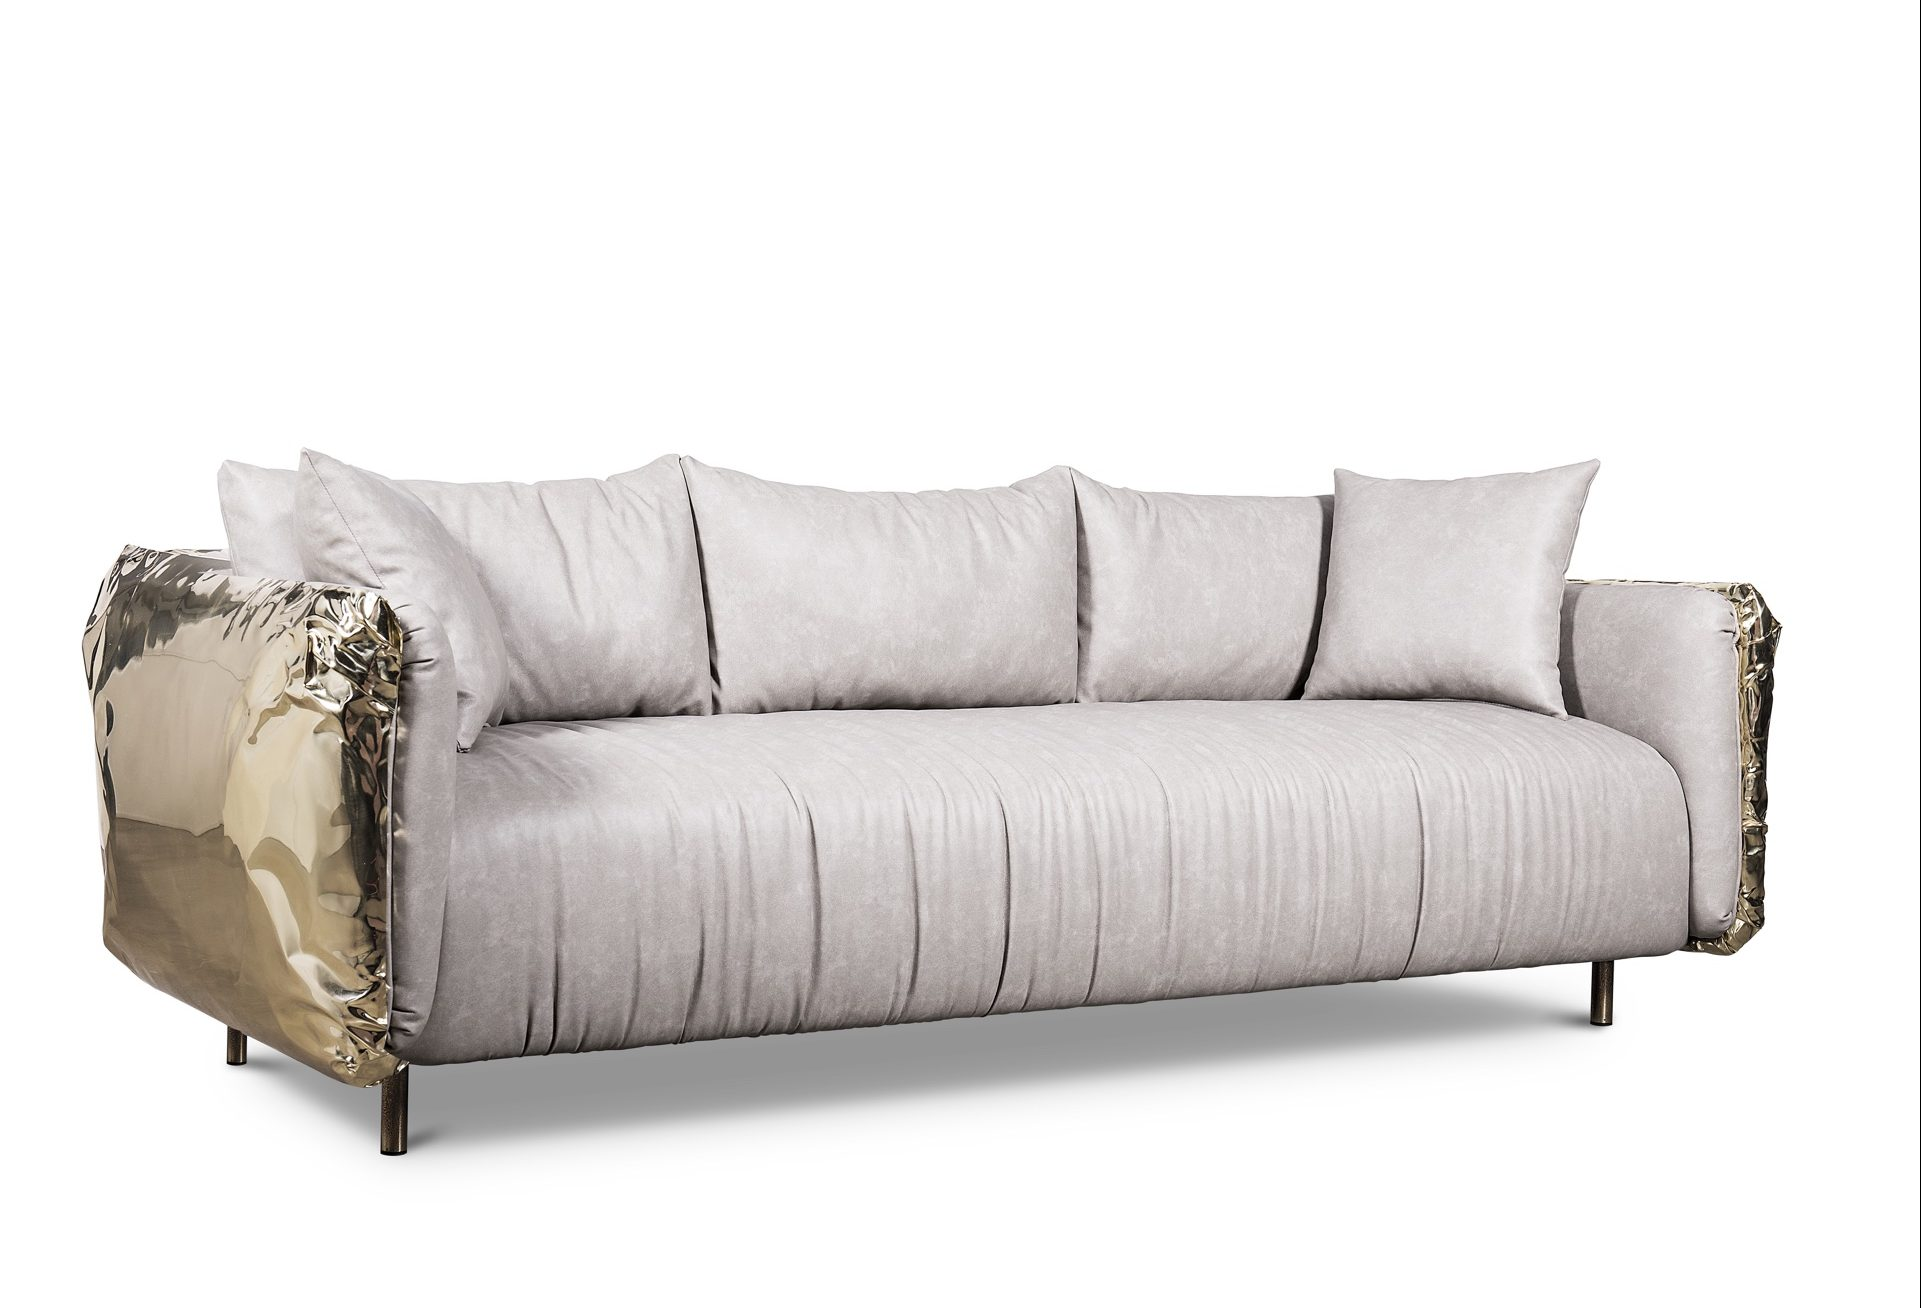 The Best Luxury Living Room Sofas to Stylish your Home Decor